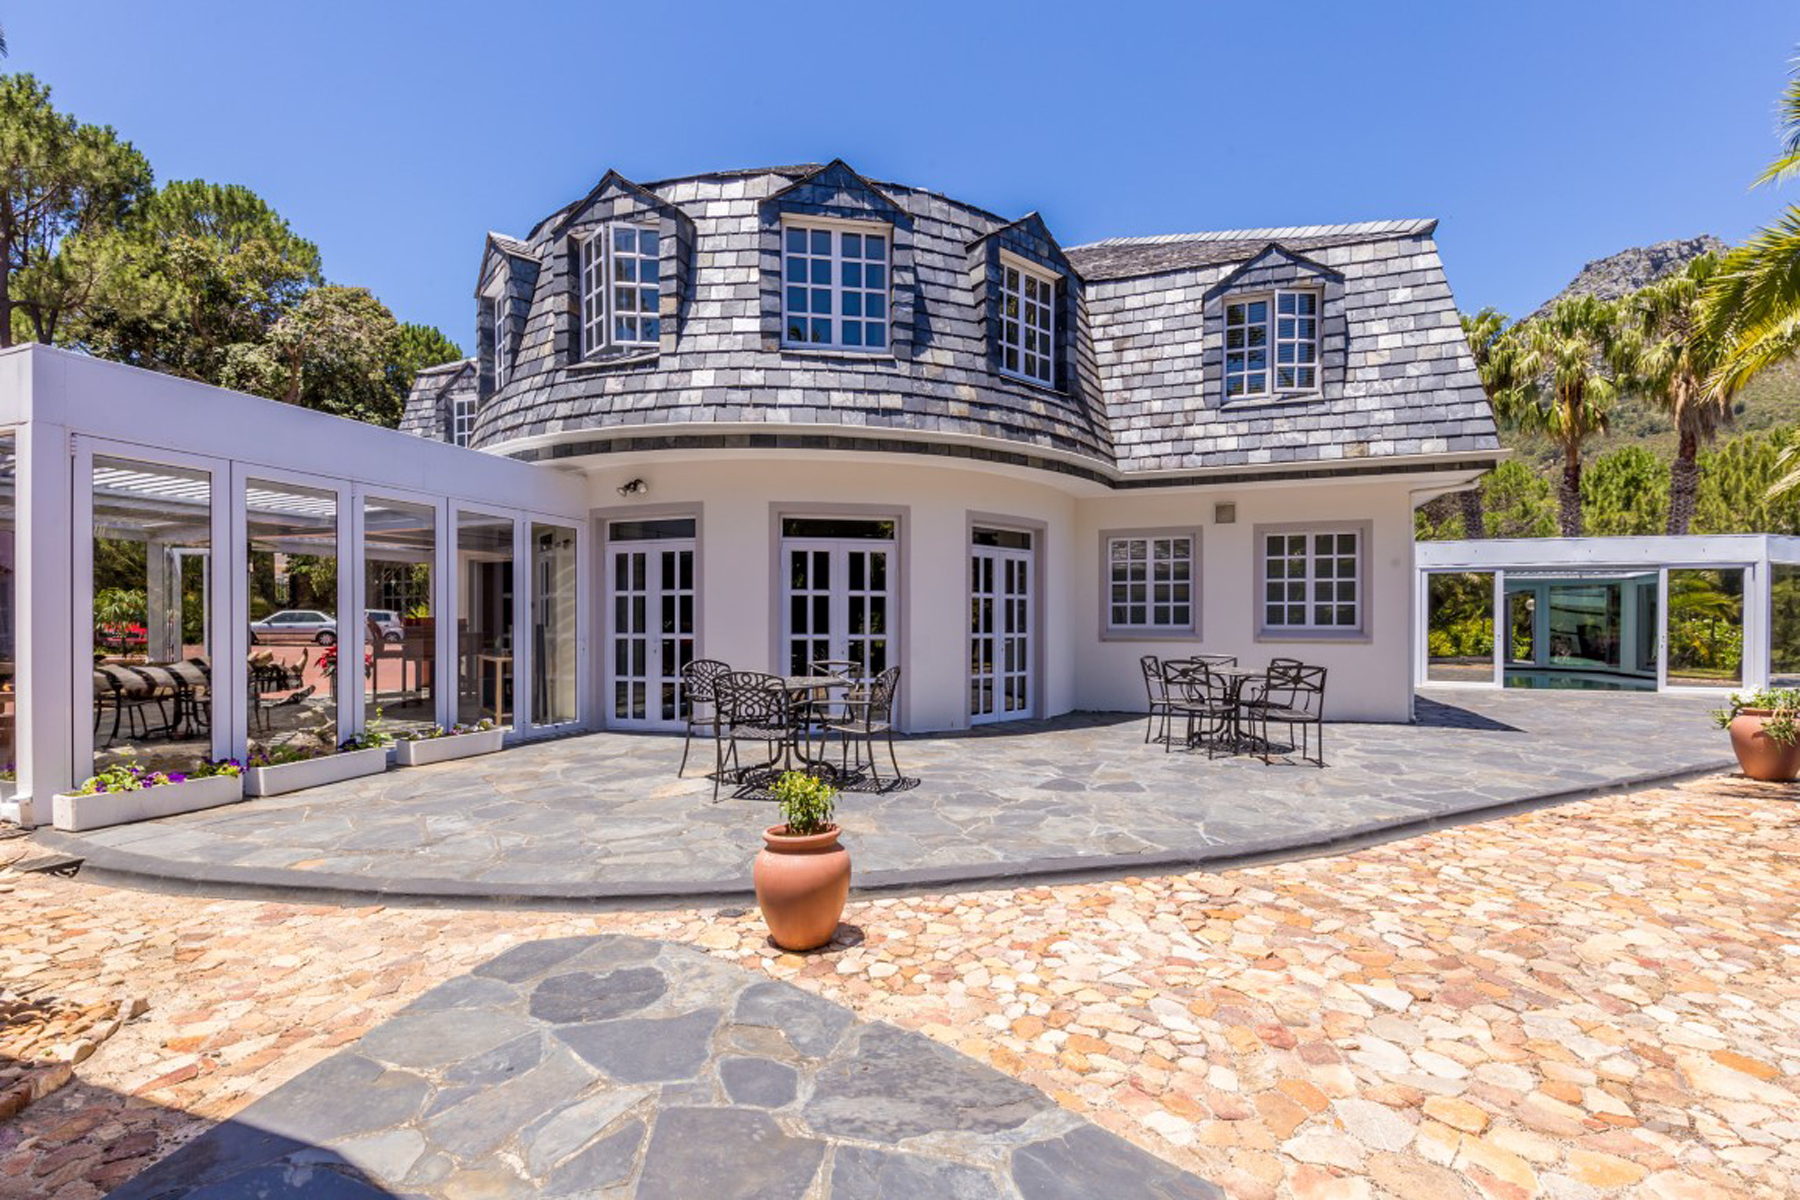 Multi-Family Home for Sale at Longkloof Hout Bay, Western Cape, South Africa